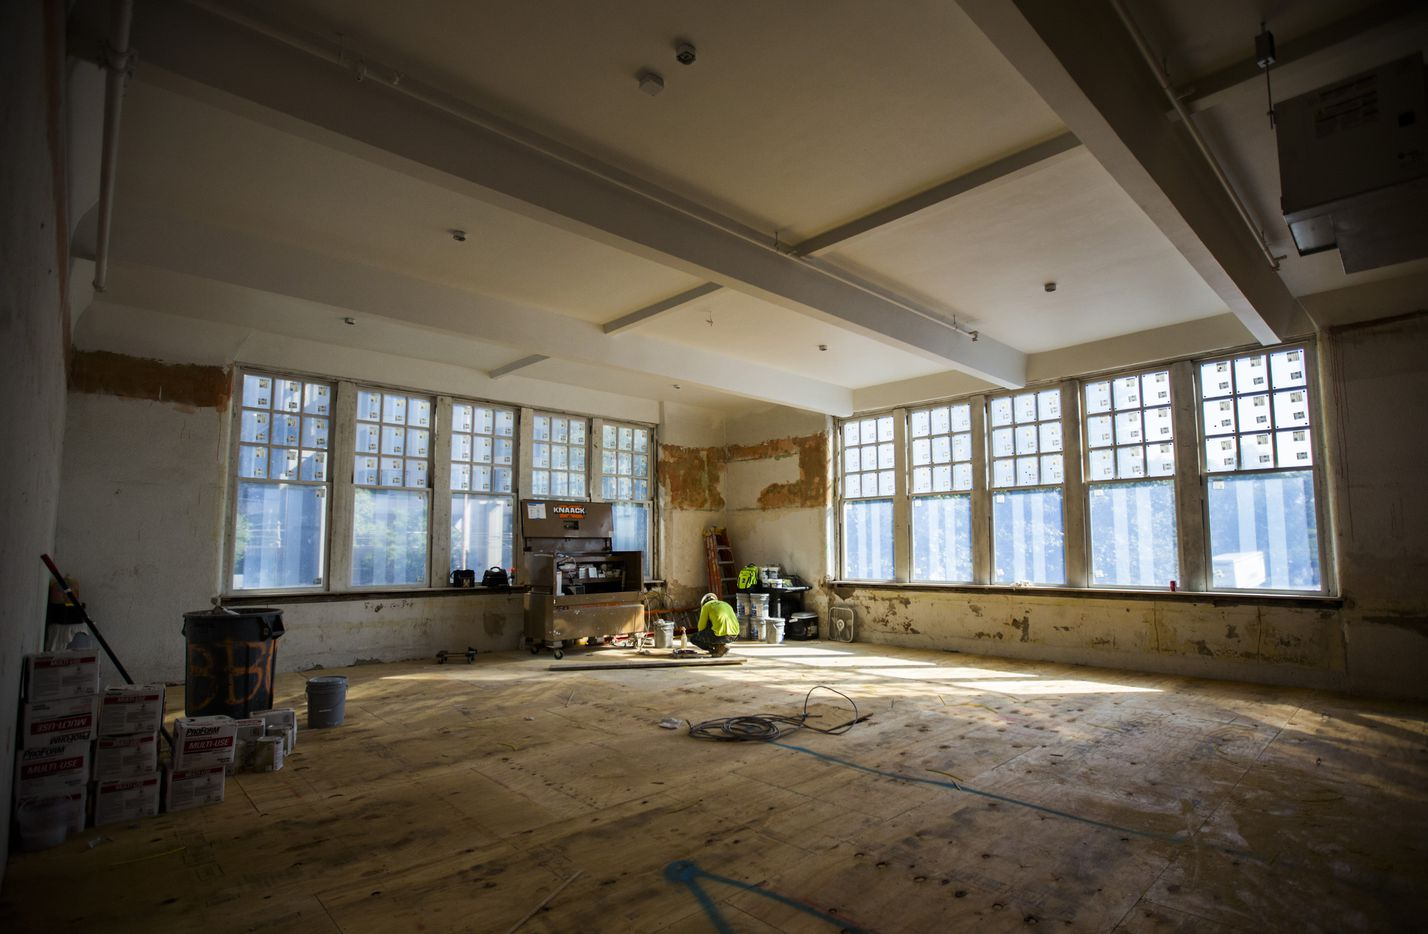 Former classrooms on the second and third floors of the old Dallas High School building have been refreshed with new plaster and windows.